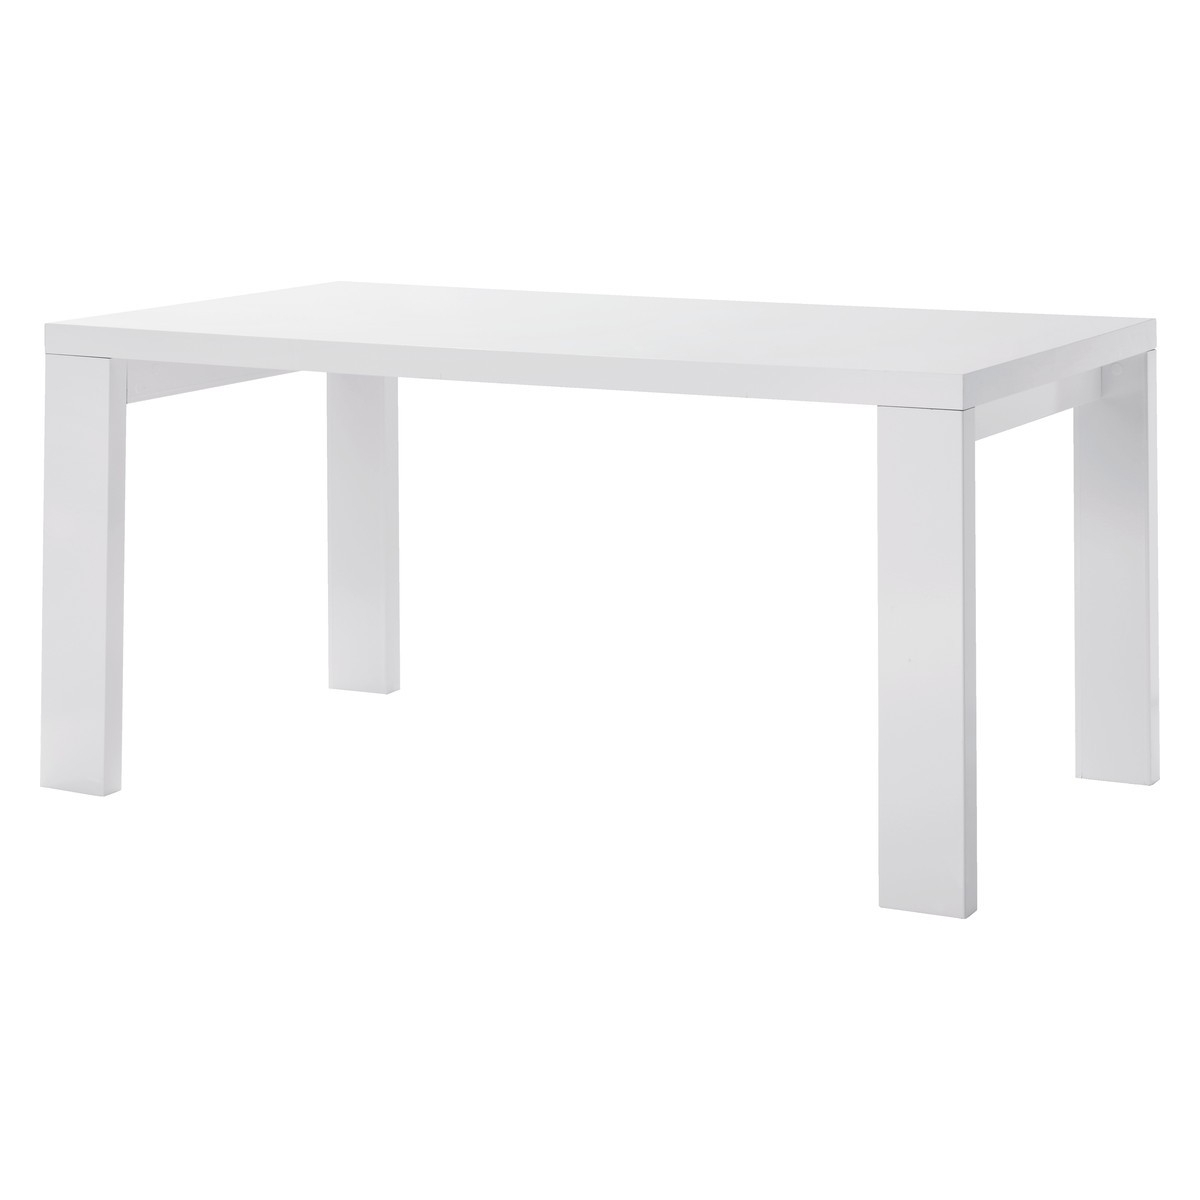 Favorite White High Gloss Dining Tables With Regard To Asper 6 Seat White High Gloss Dining Table (View 5 of 25)